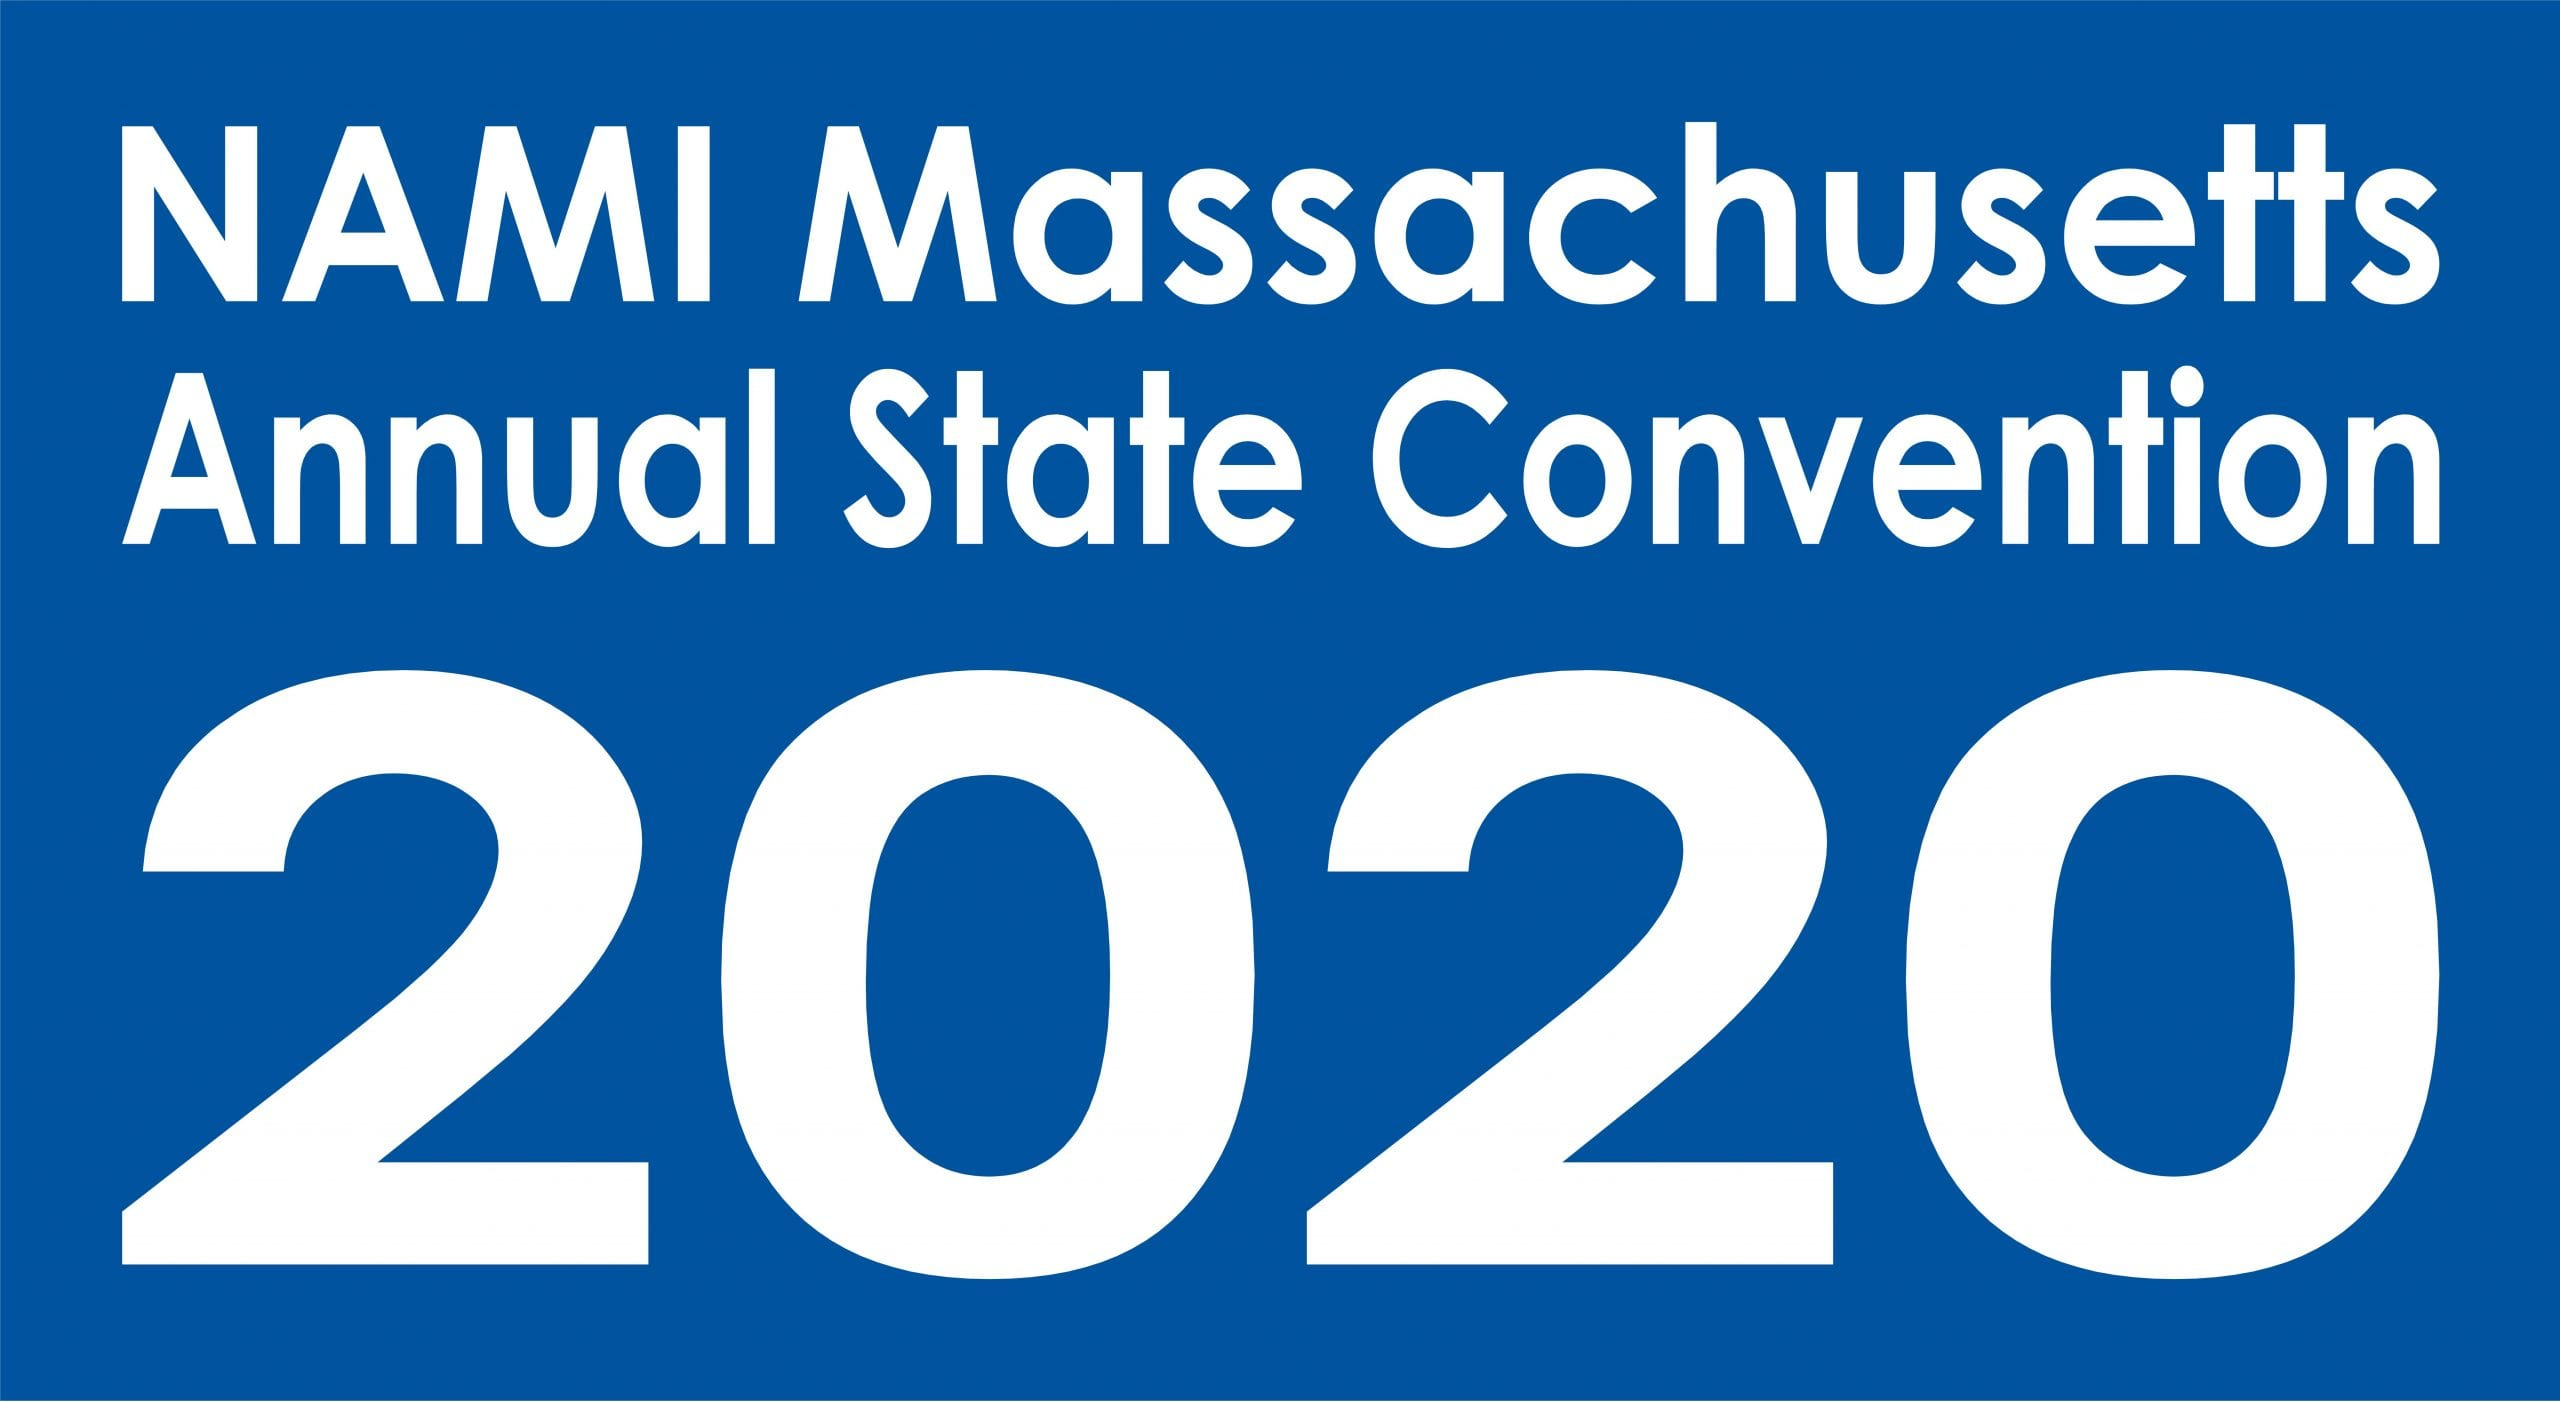 NAMI Massachusetts Annual State Convention 2020 in blue